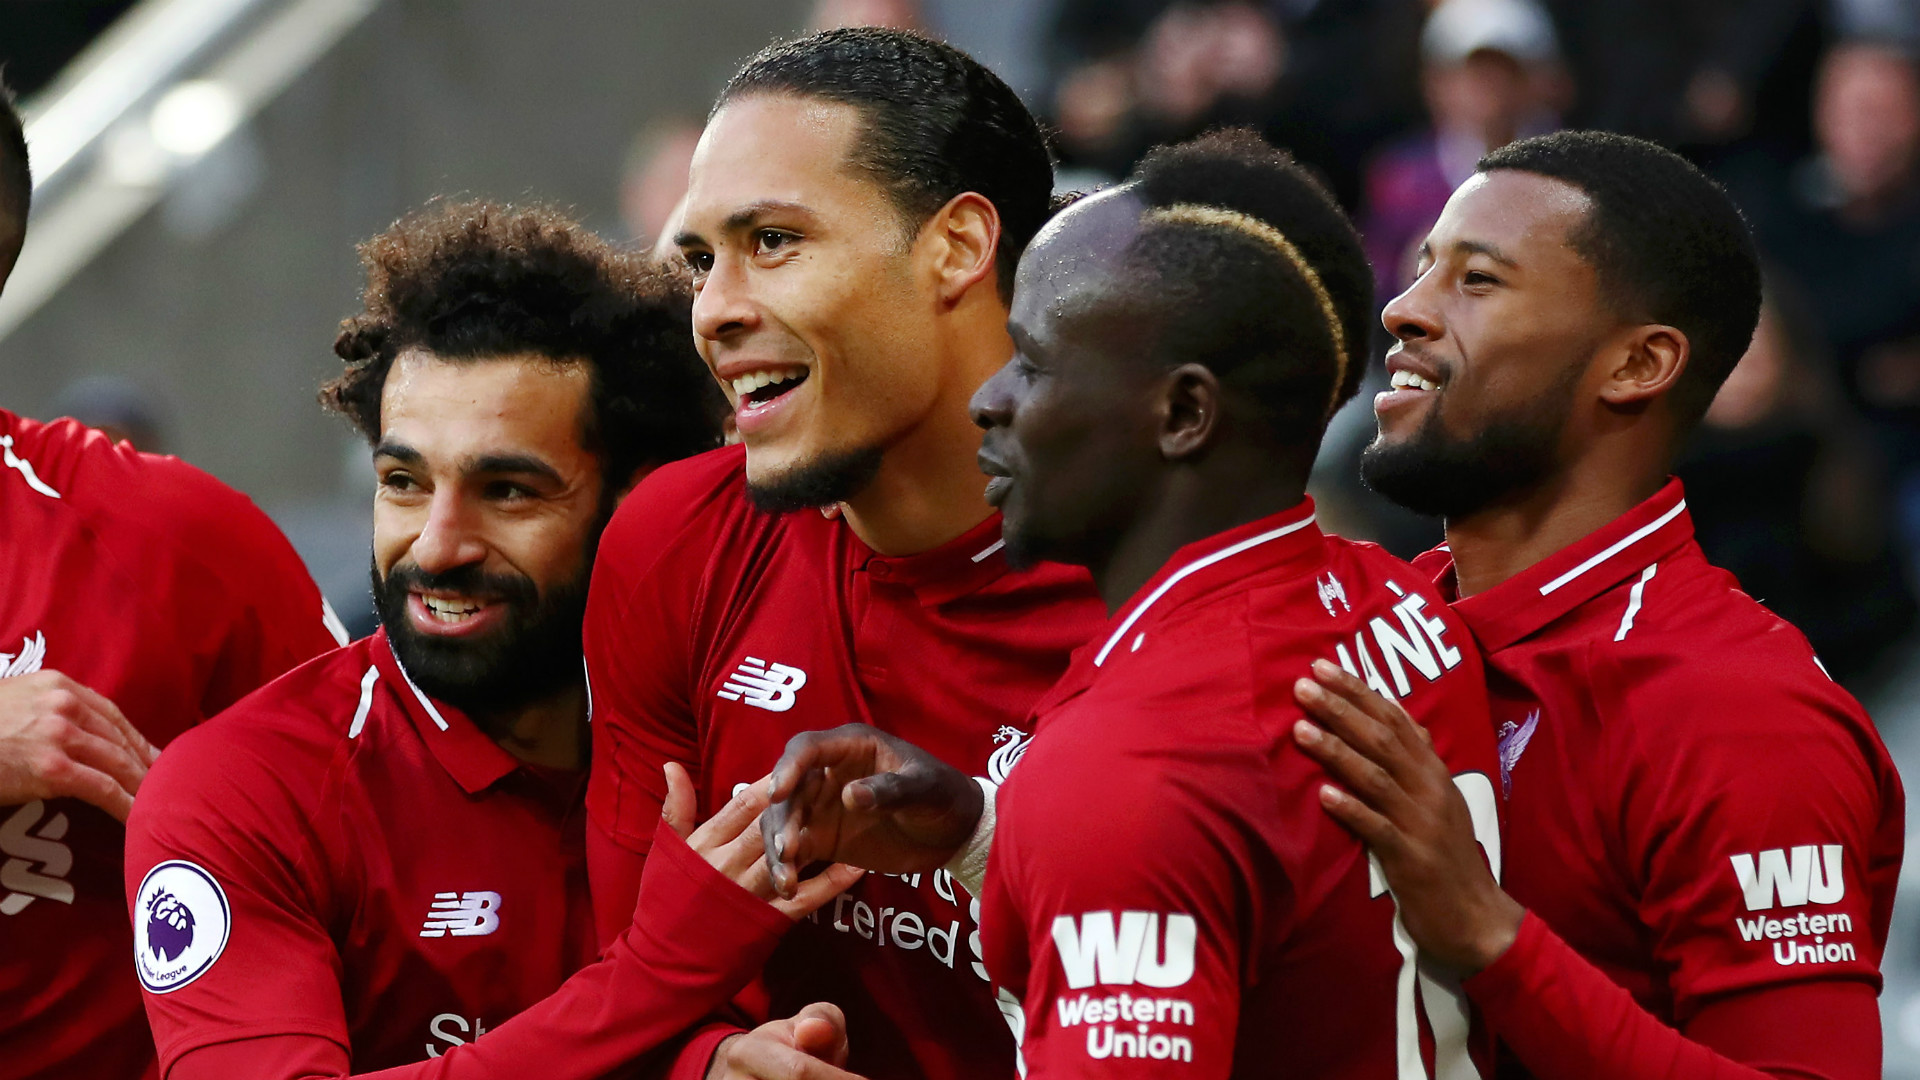 Van Dijk out to improve on 'nuts' Barcelona clash in Champions League final